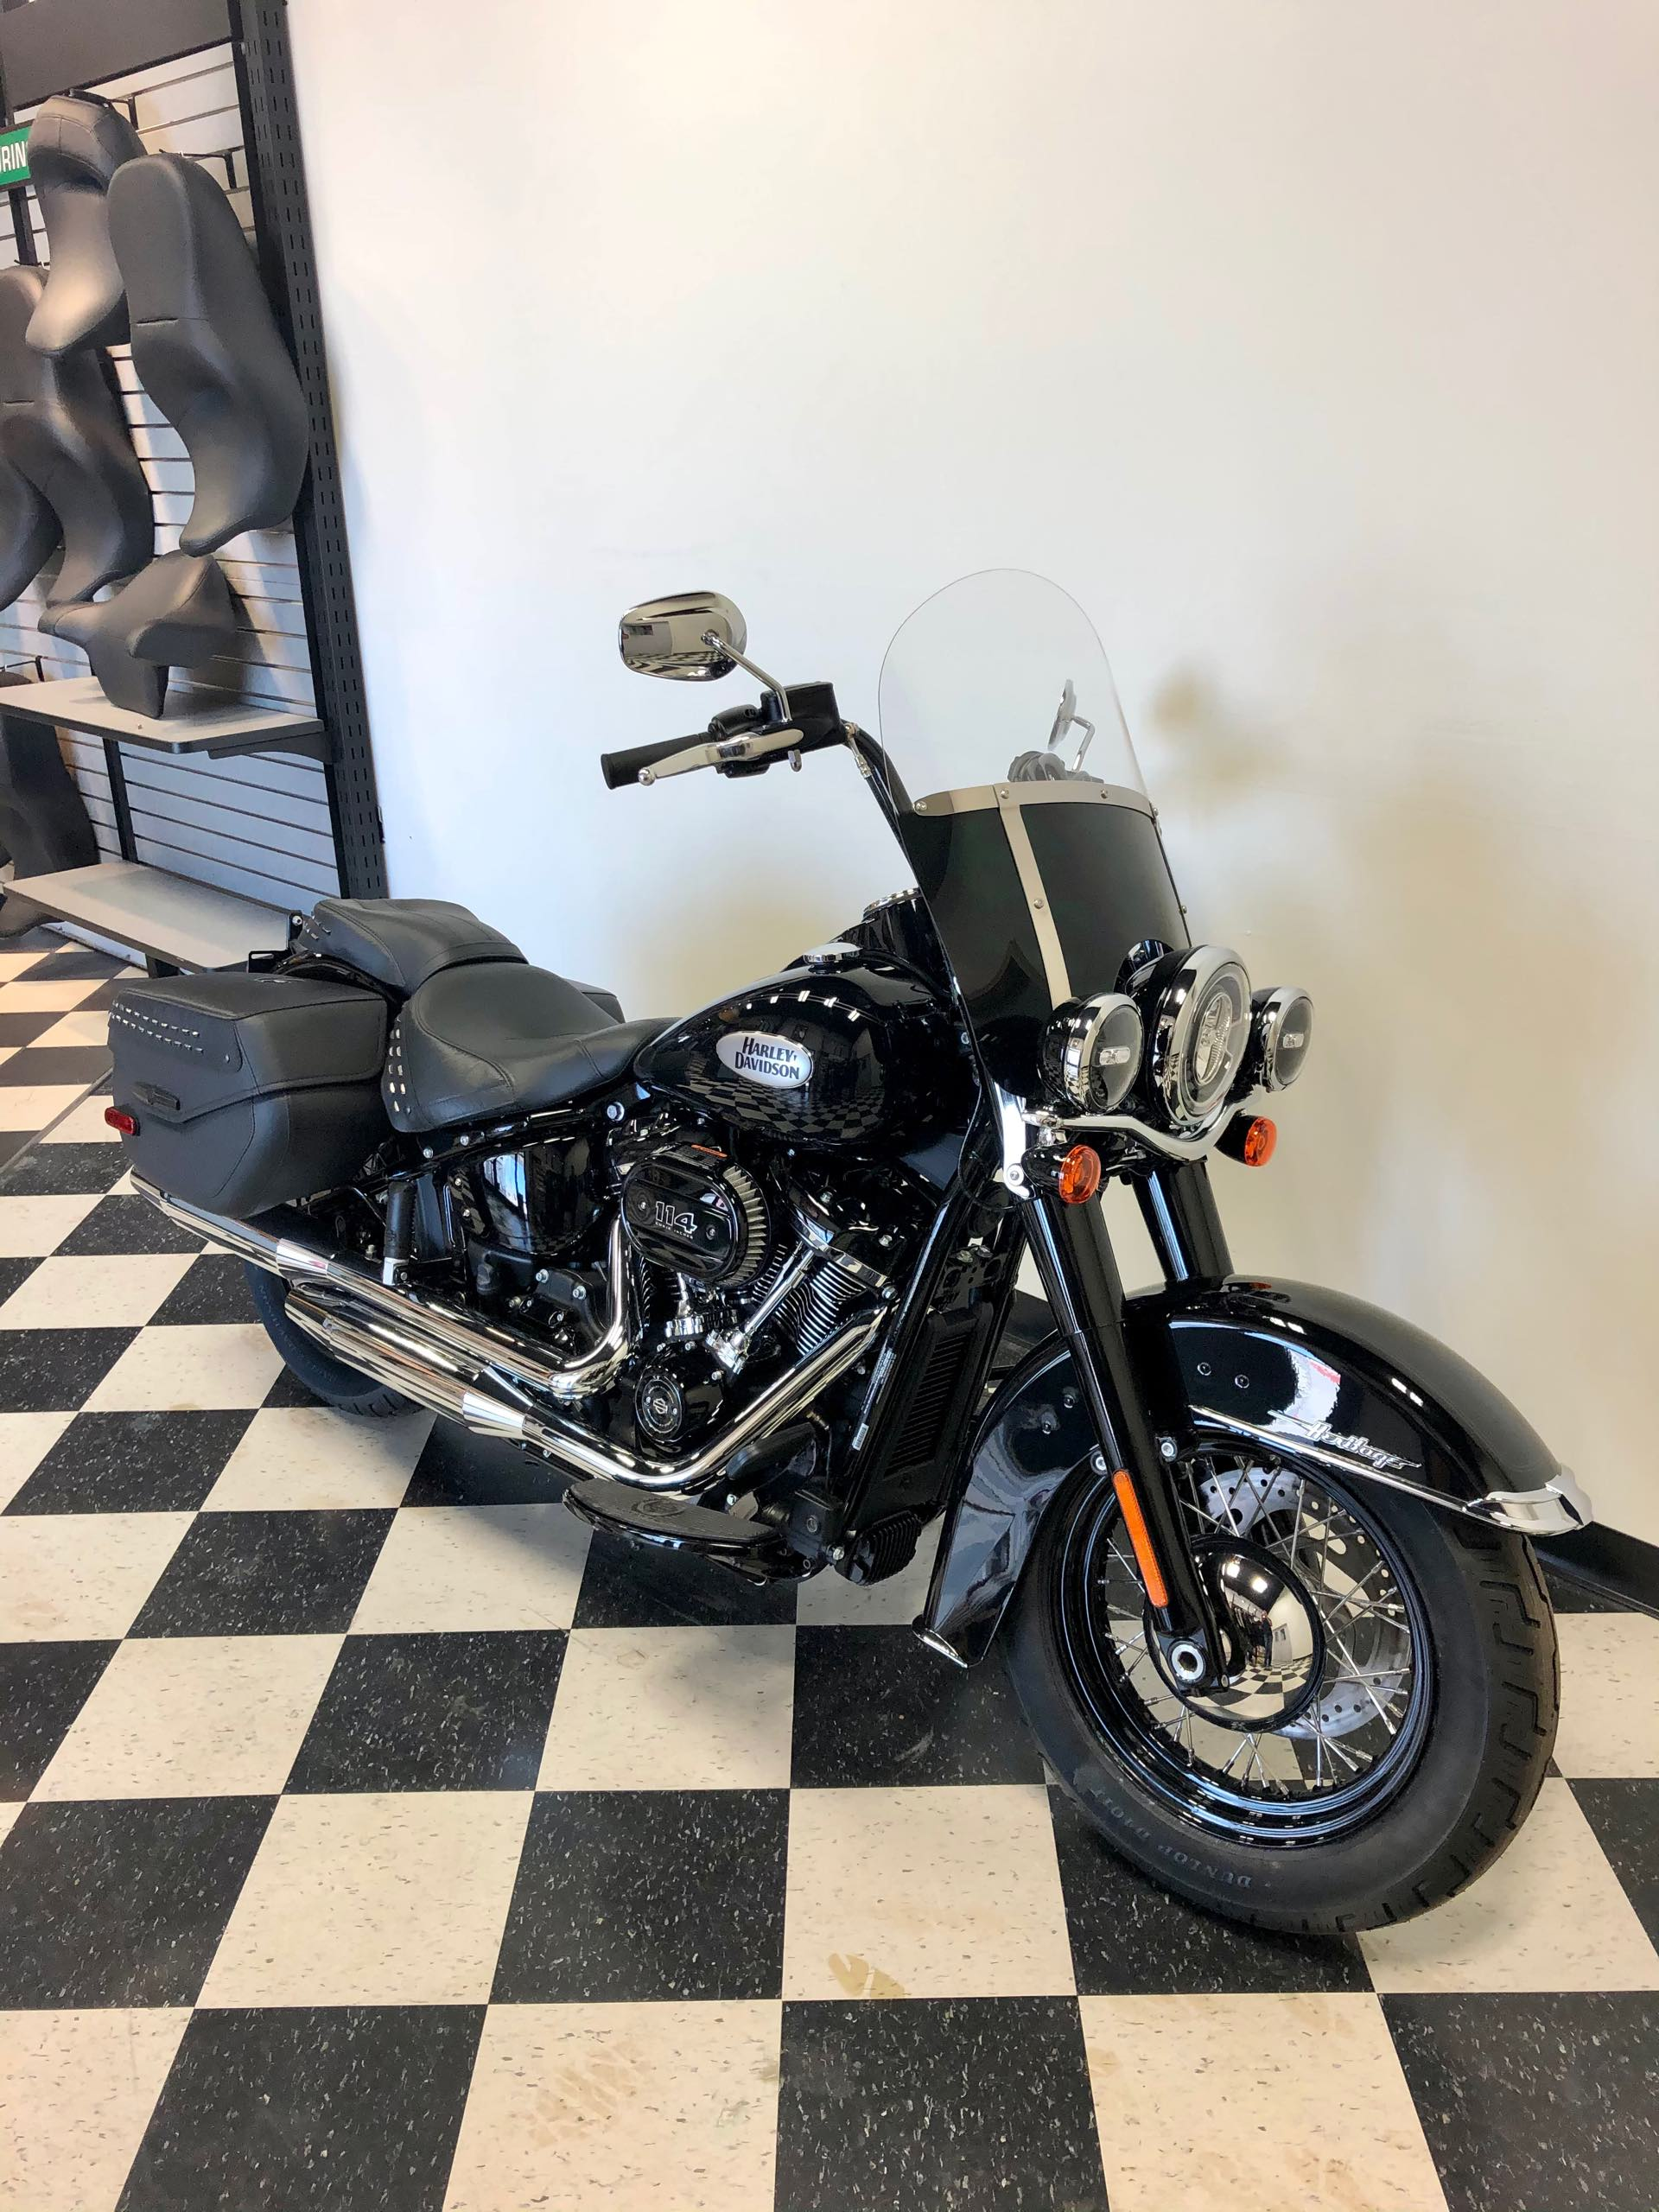 2021 Harley-Davidson Touring Heritage Classic 114 at Deluxe Harley Davidson